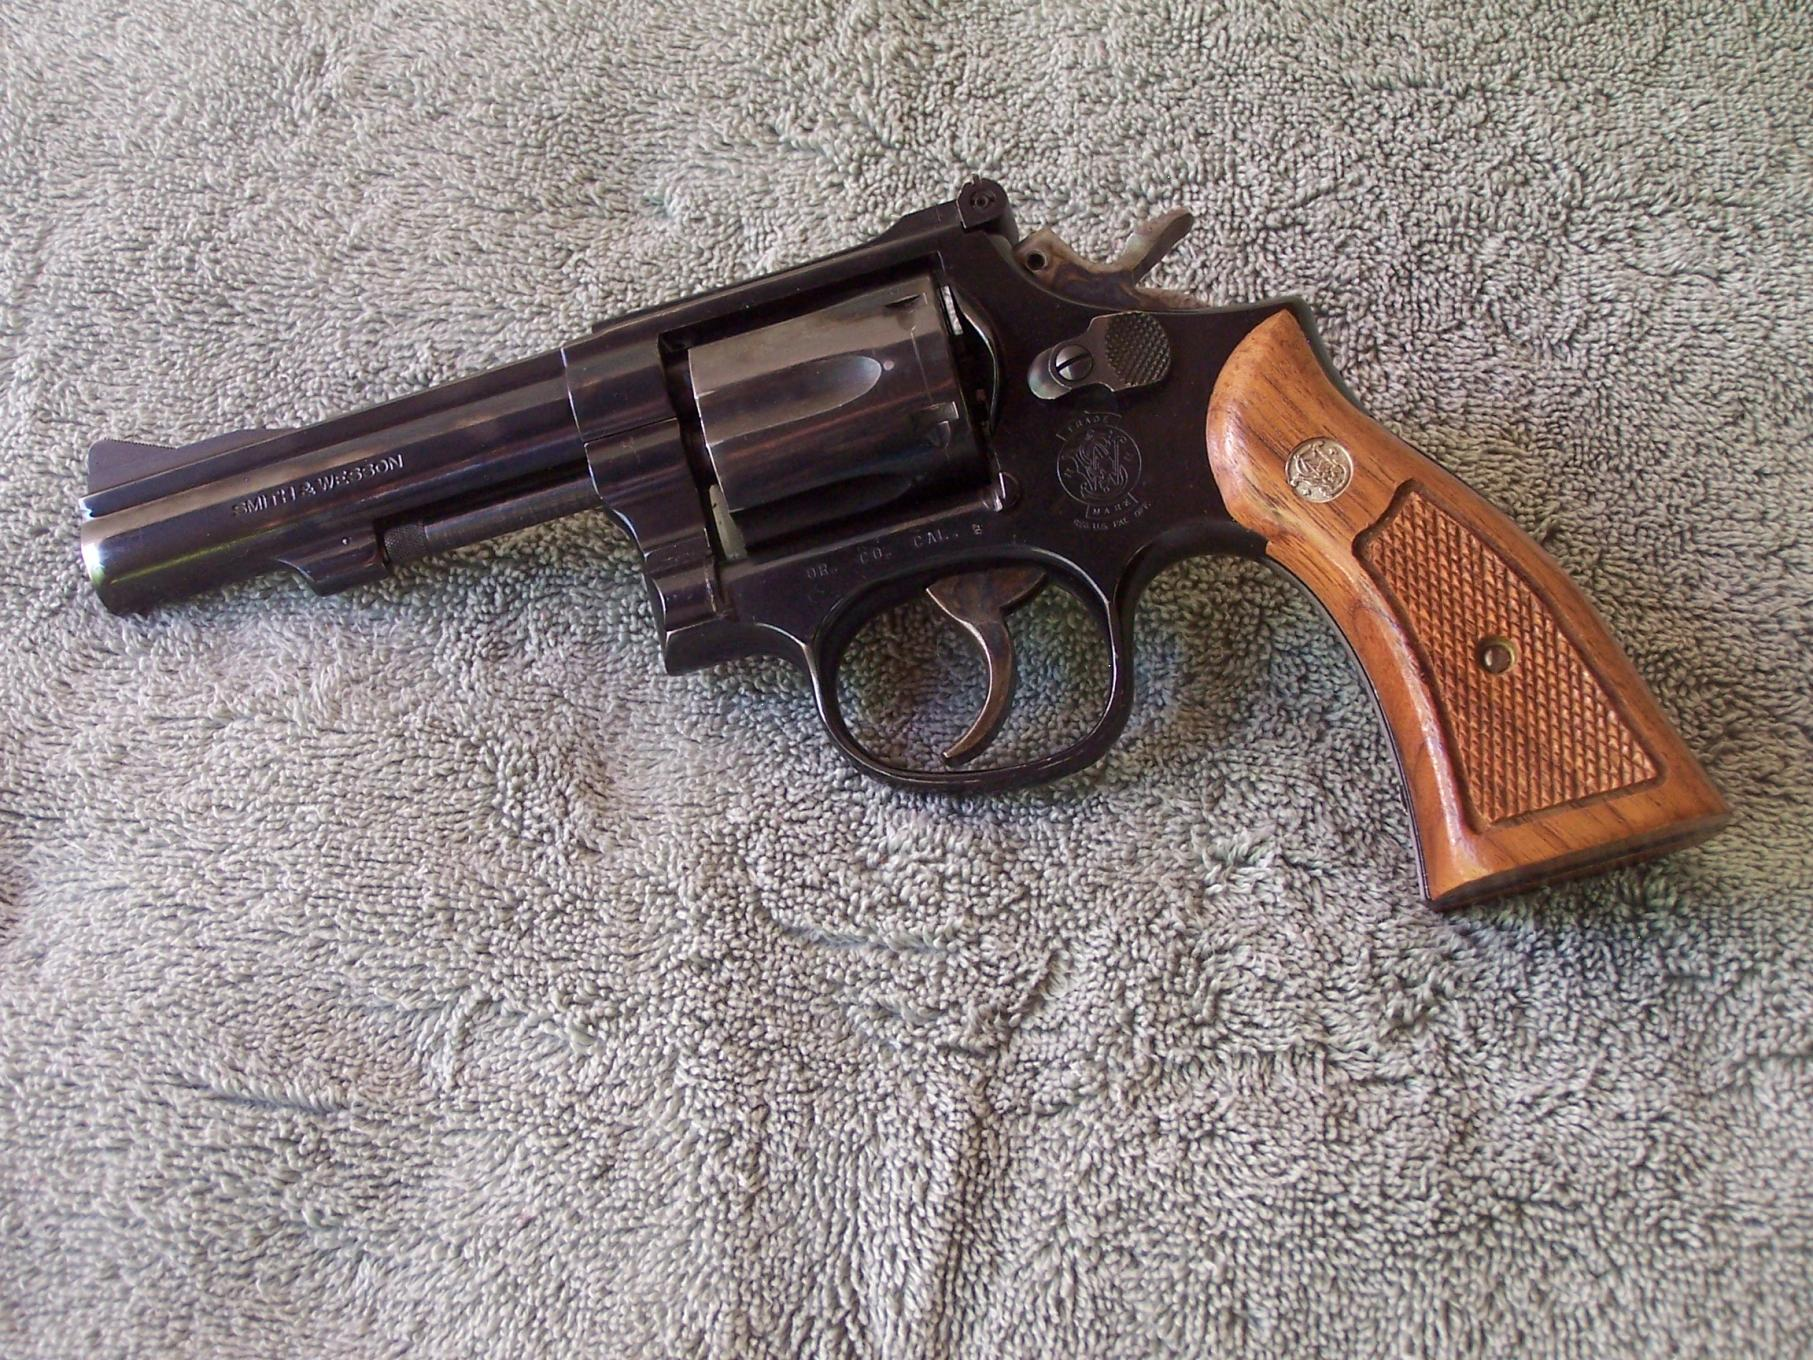 """Official """"I love my beat up carry gun"""" picture thread-028.jpg"""